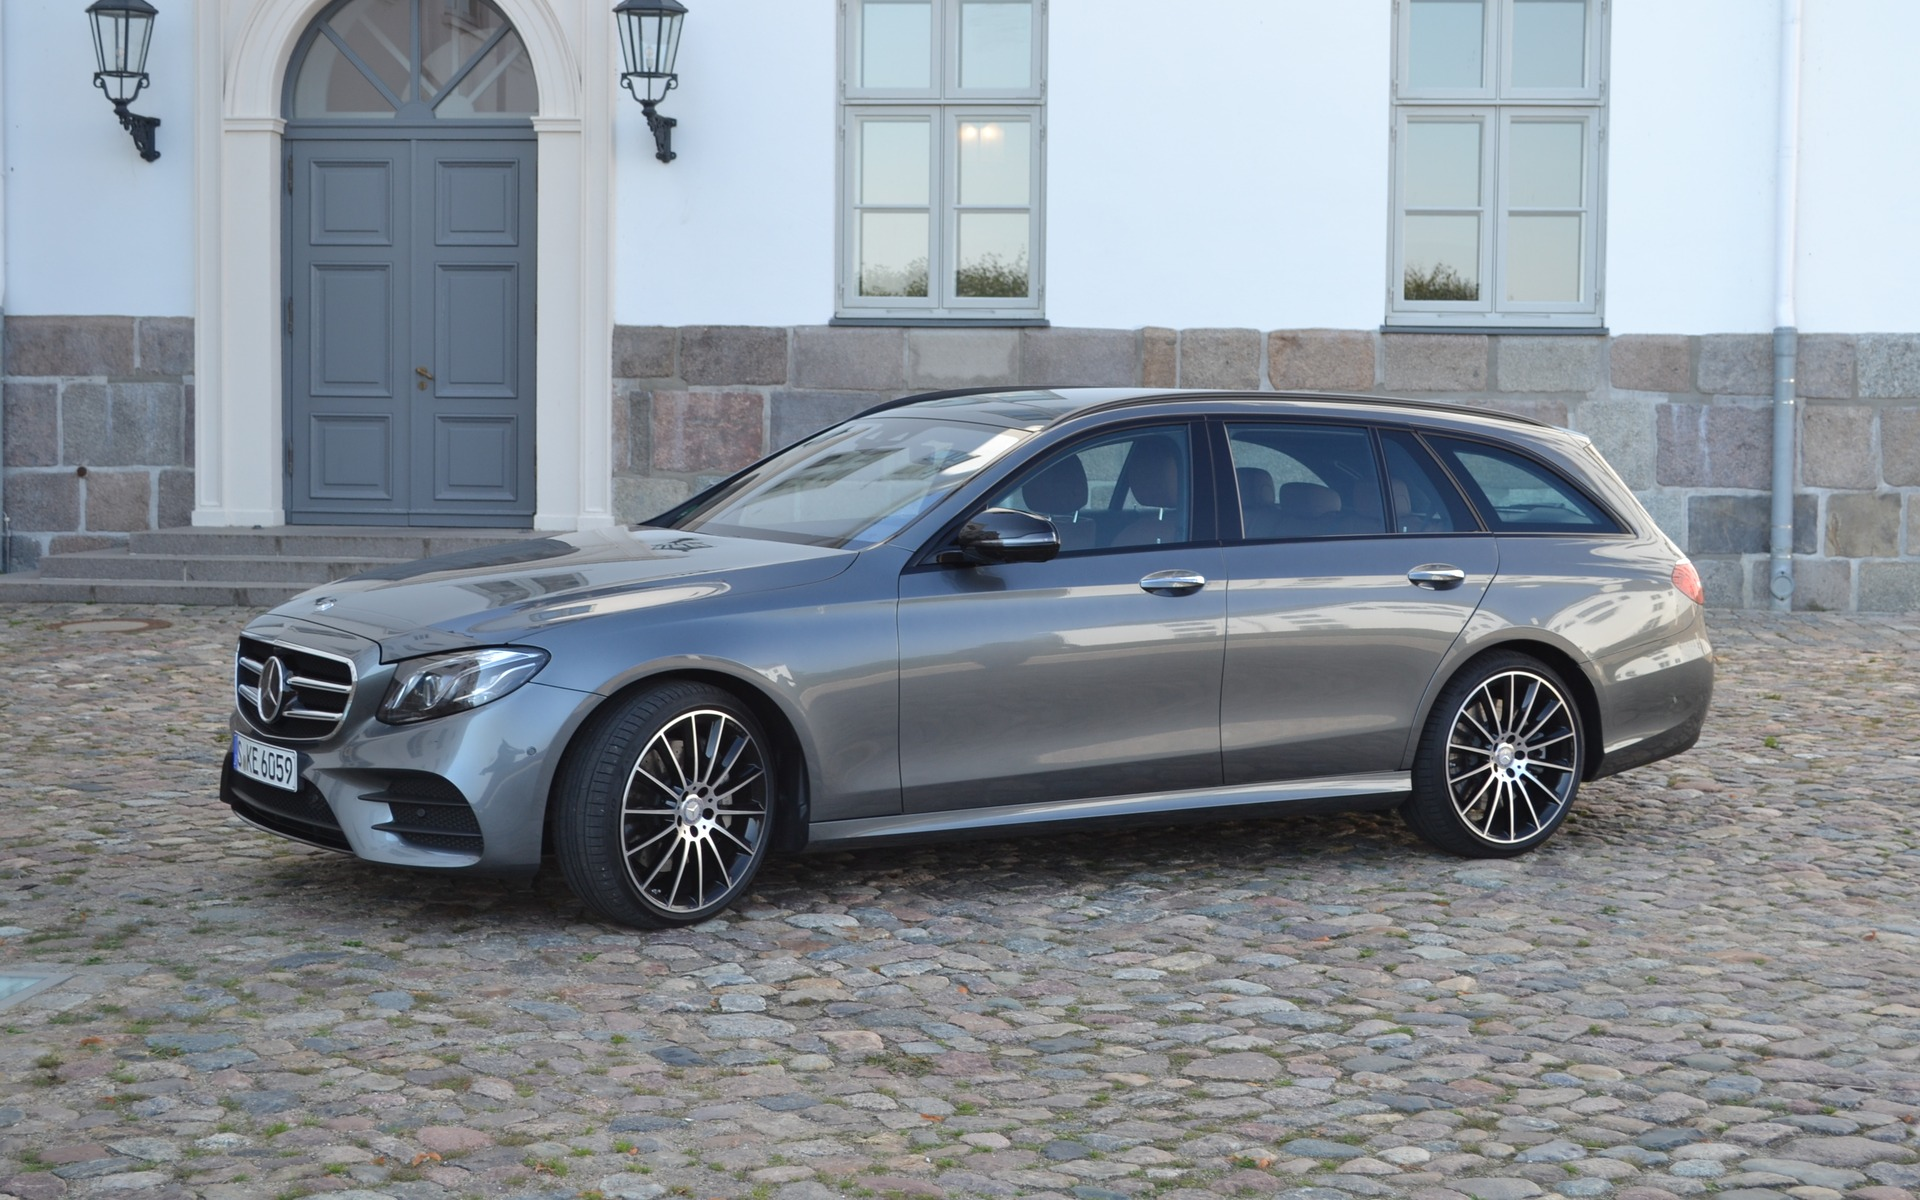 2017 mercedes-benz e-class wagon: why don't we like wagons anymore